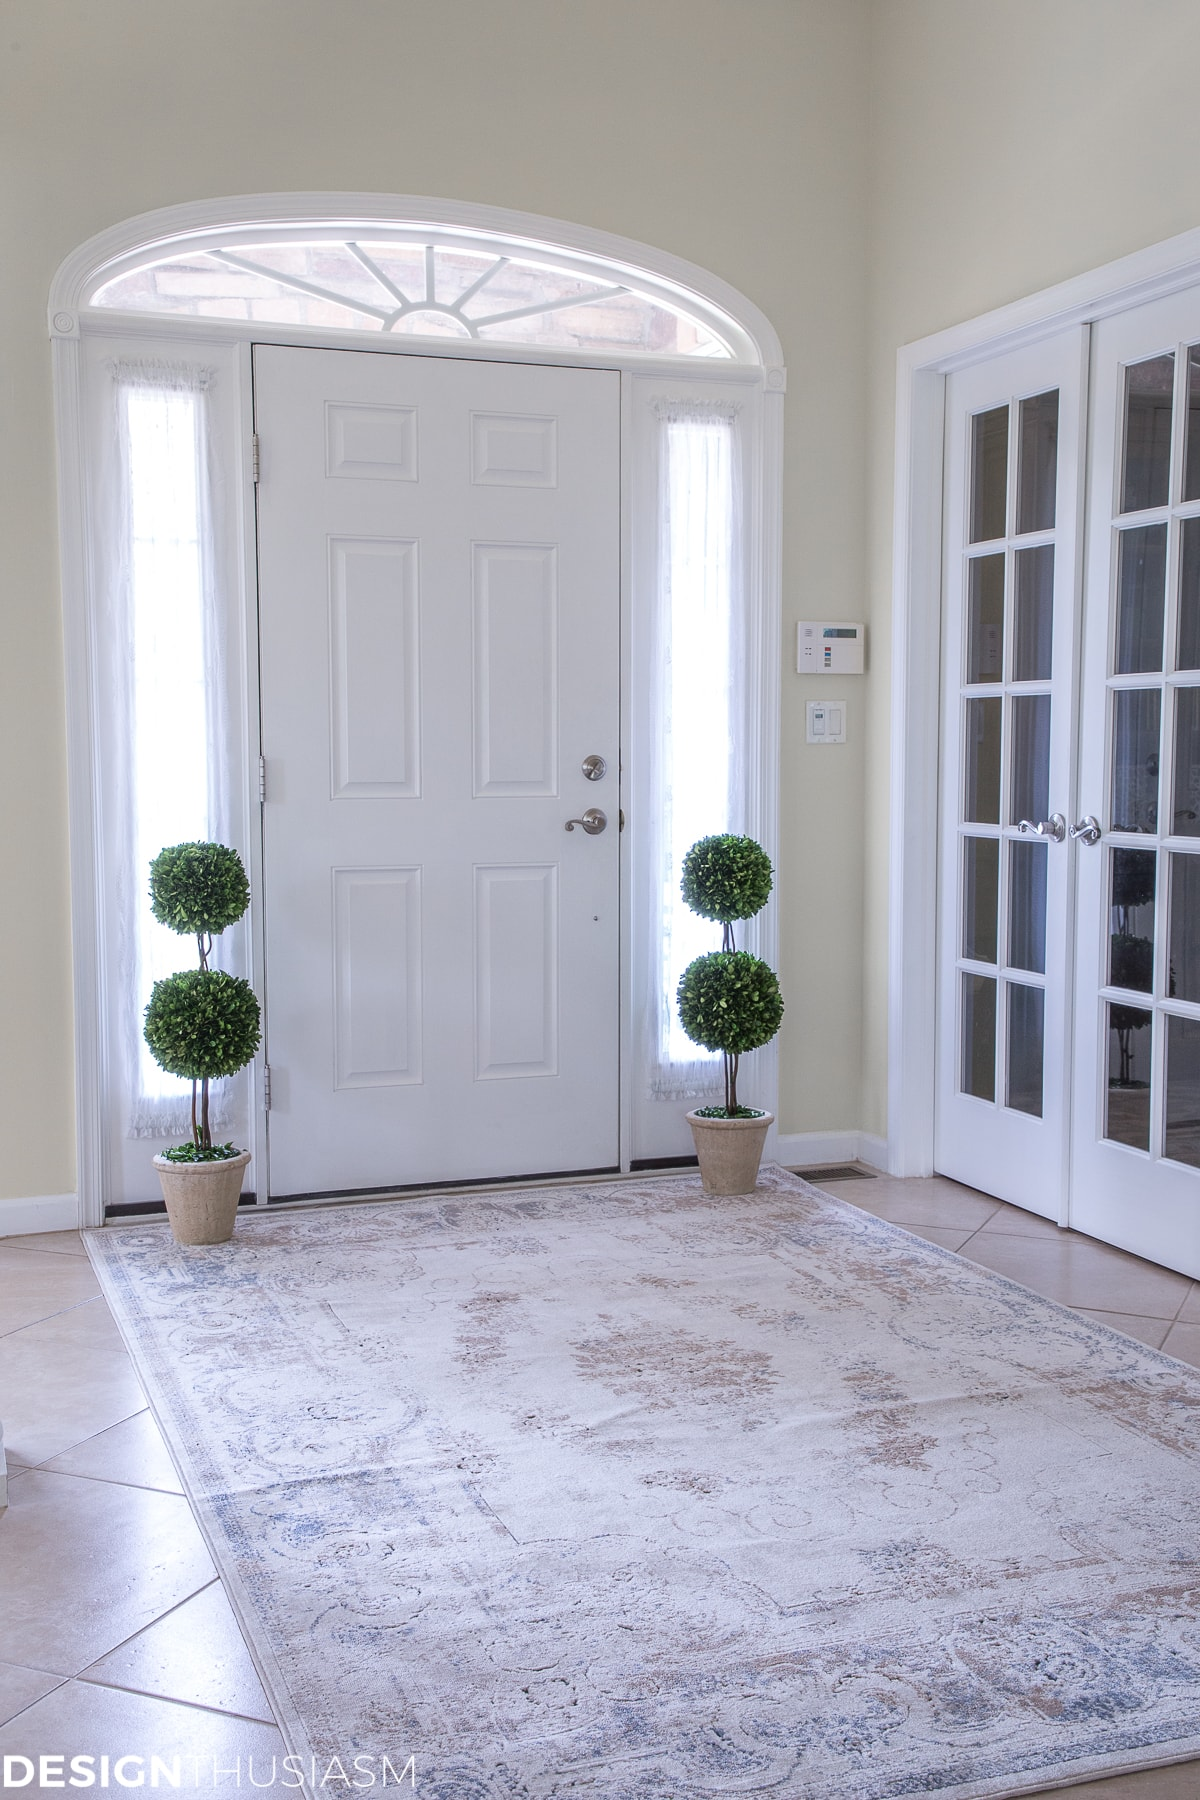 Entrance Foyer Dimensions : Entryway rugs how to create an elegant entry foyer